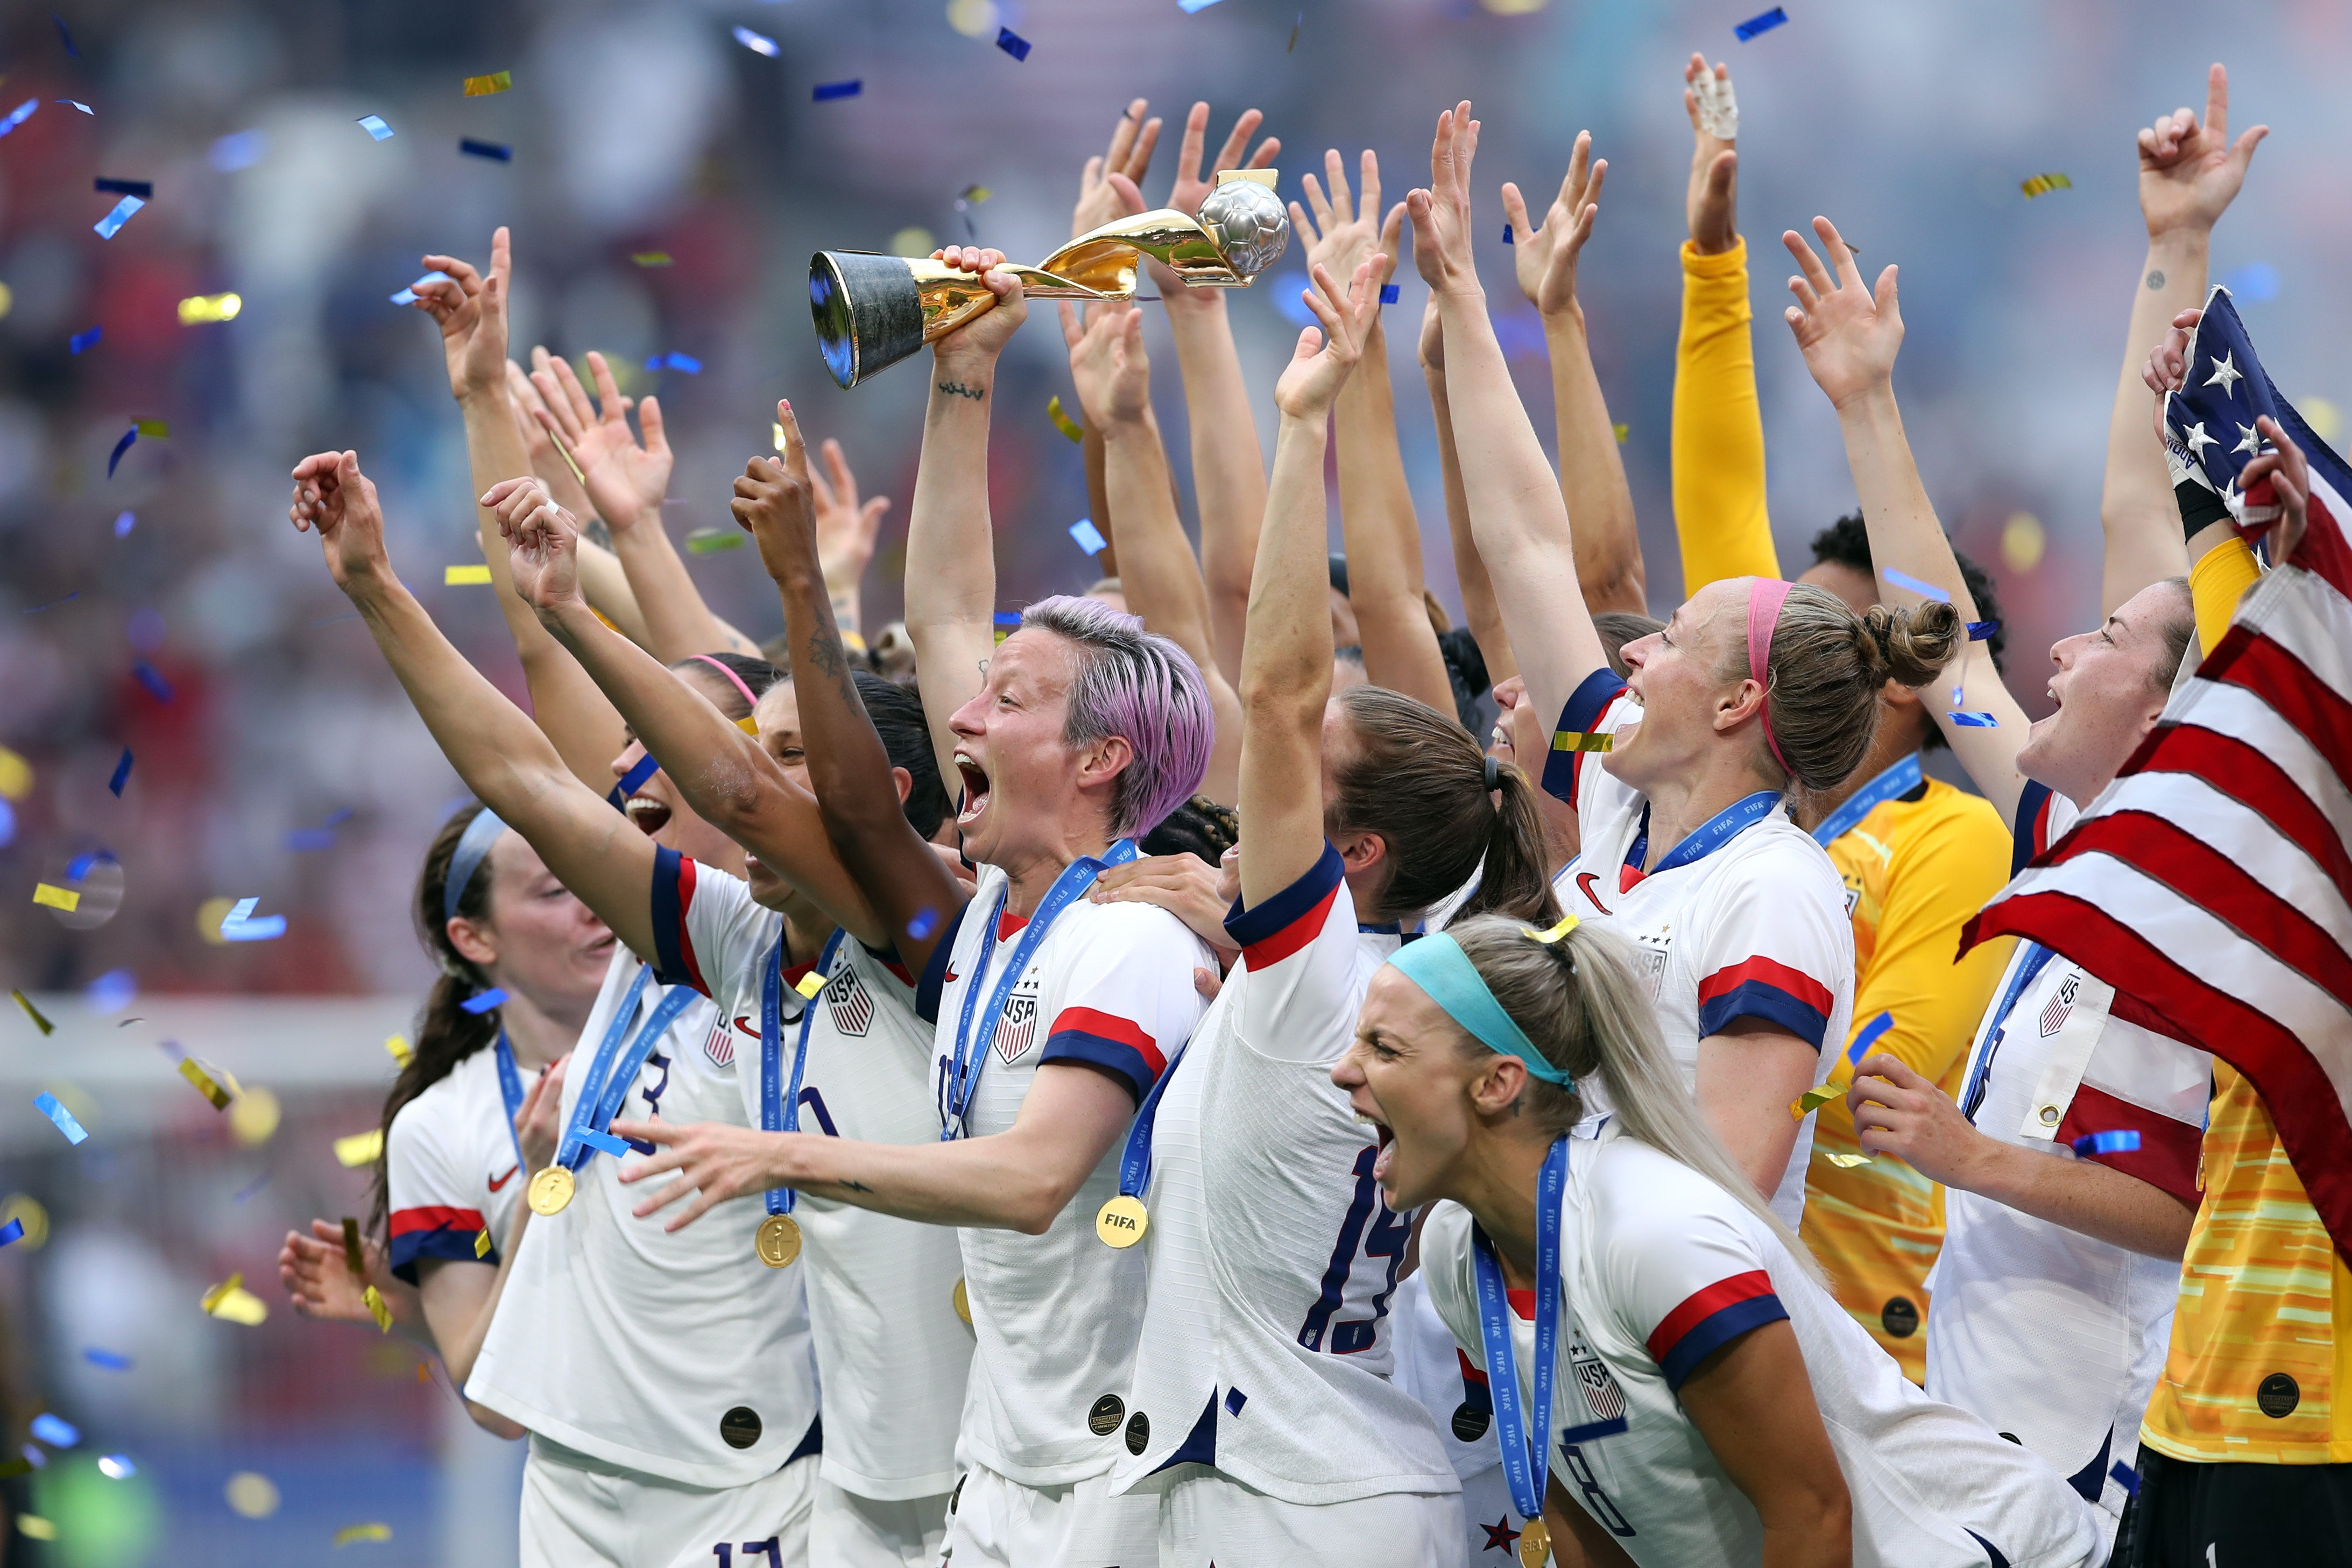 The US Women's Soccer Team celebrate after a match at the 2019 FIFA Women's World Cup | Photo: Getty Images